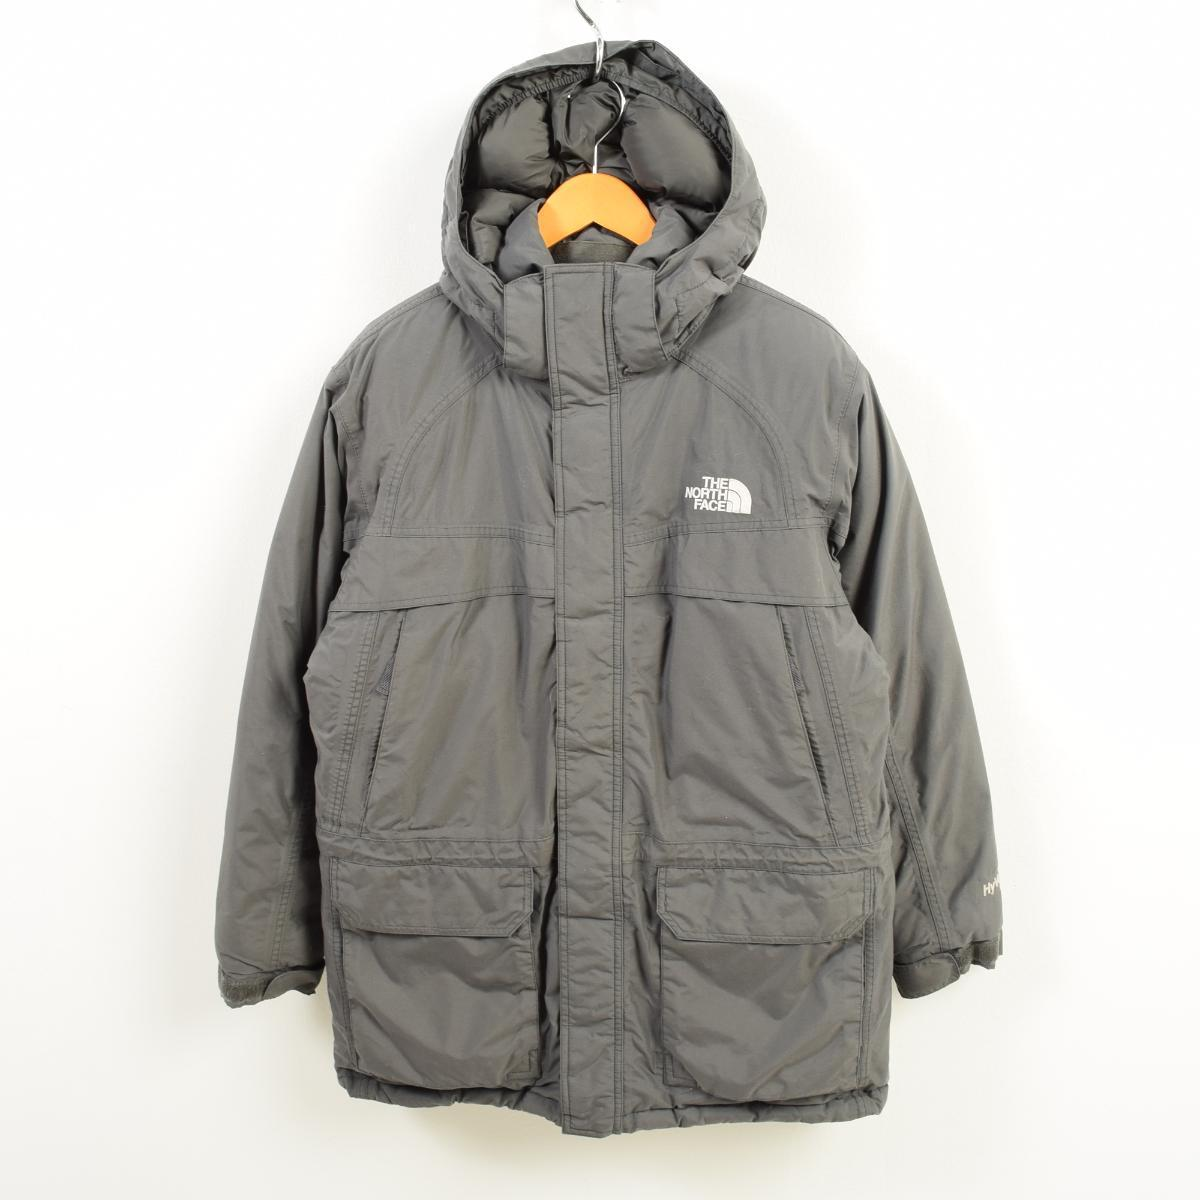 5988f4b21 90s the North Face THE NORTH FACE HYVENT high vent Mackmurdo parka goose  down jacket men XL /wax0997